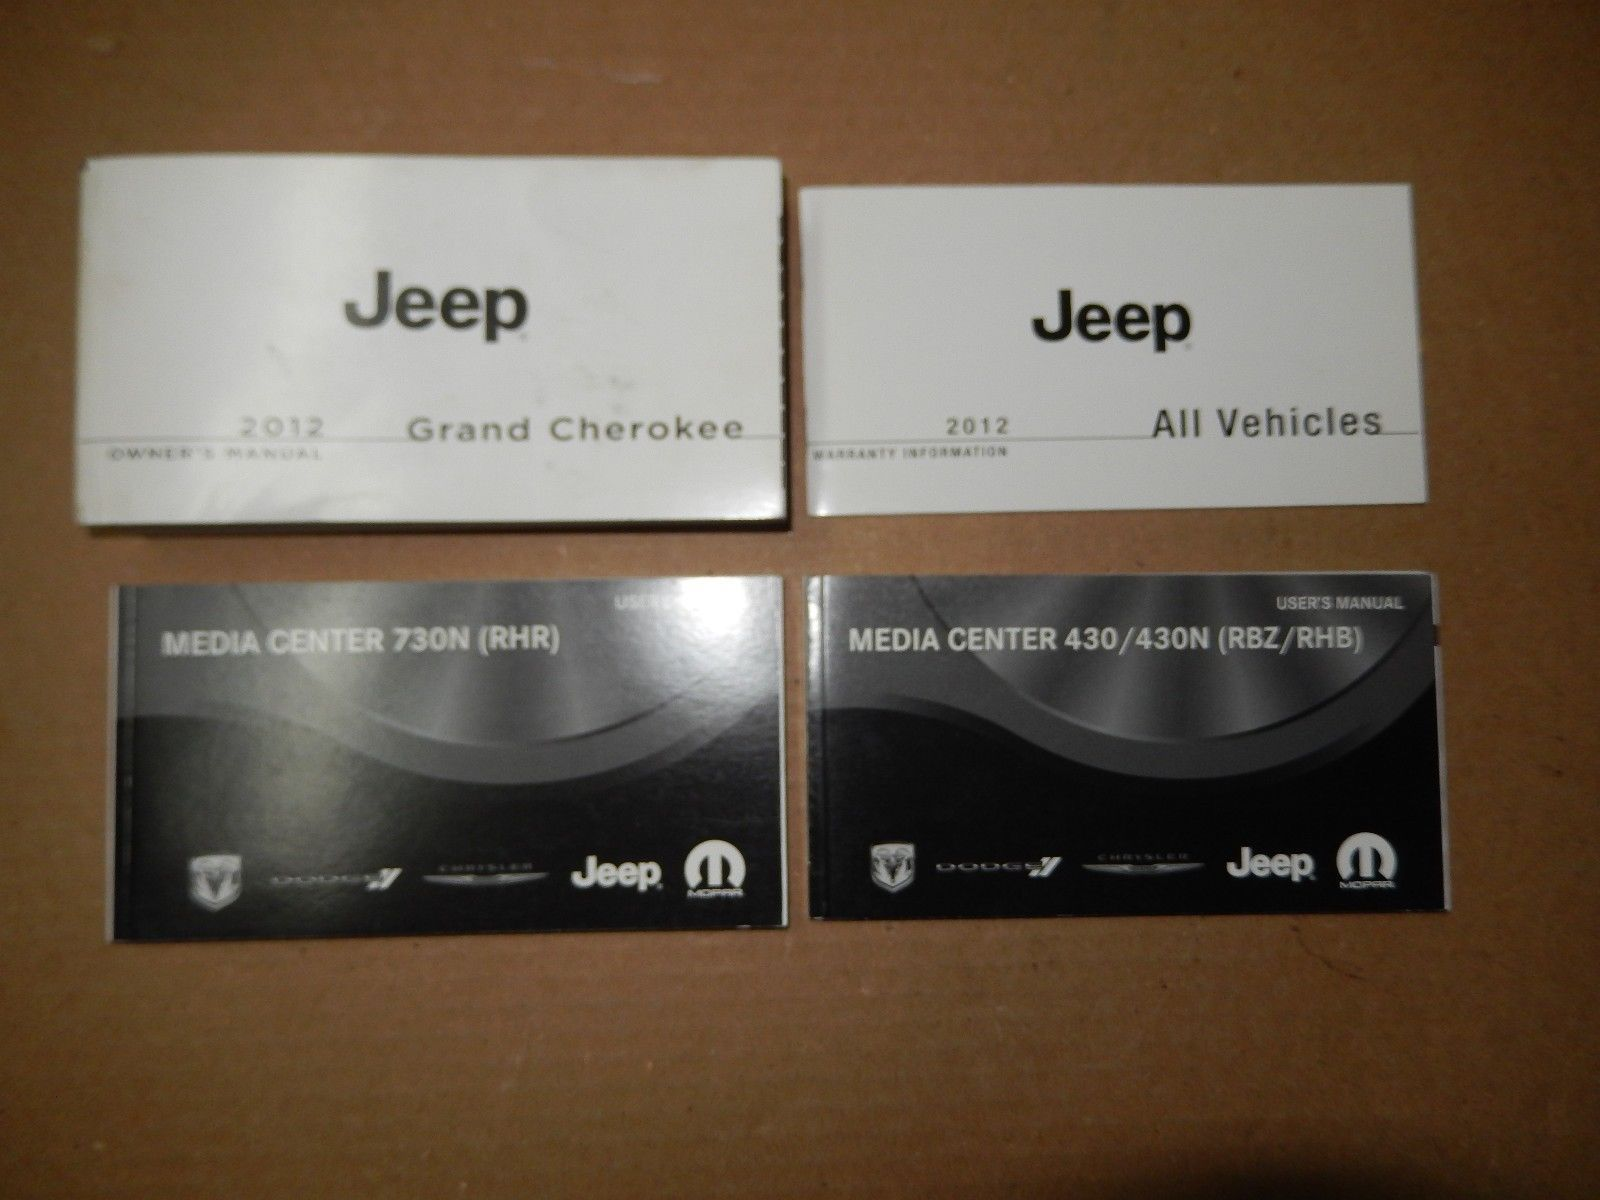 2012 JEEP GRAND CHEROKEE OWNERS MANUAL WITH NAVIGATION